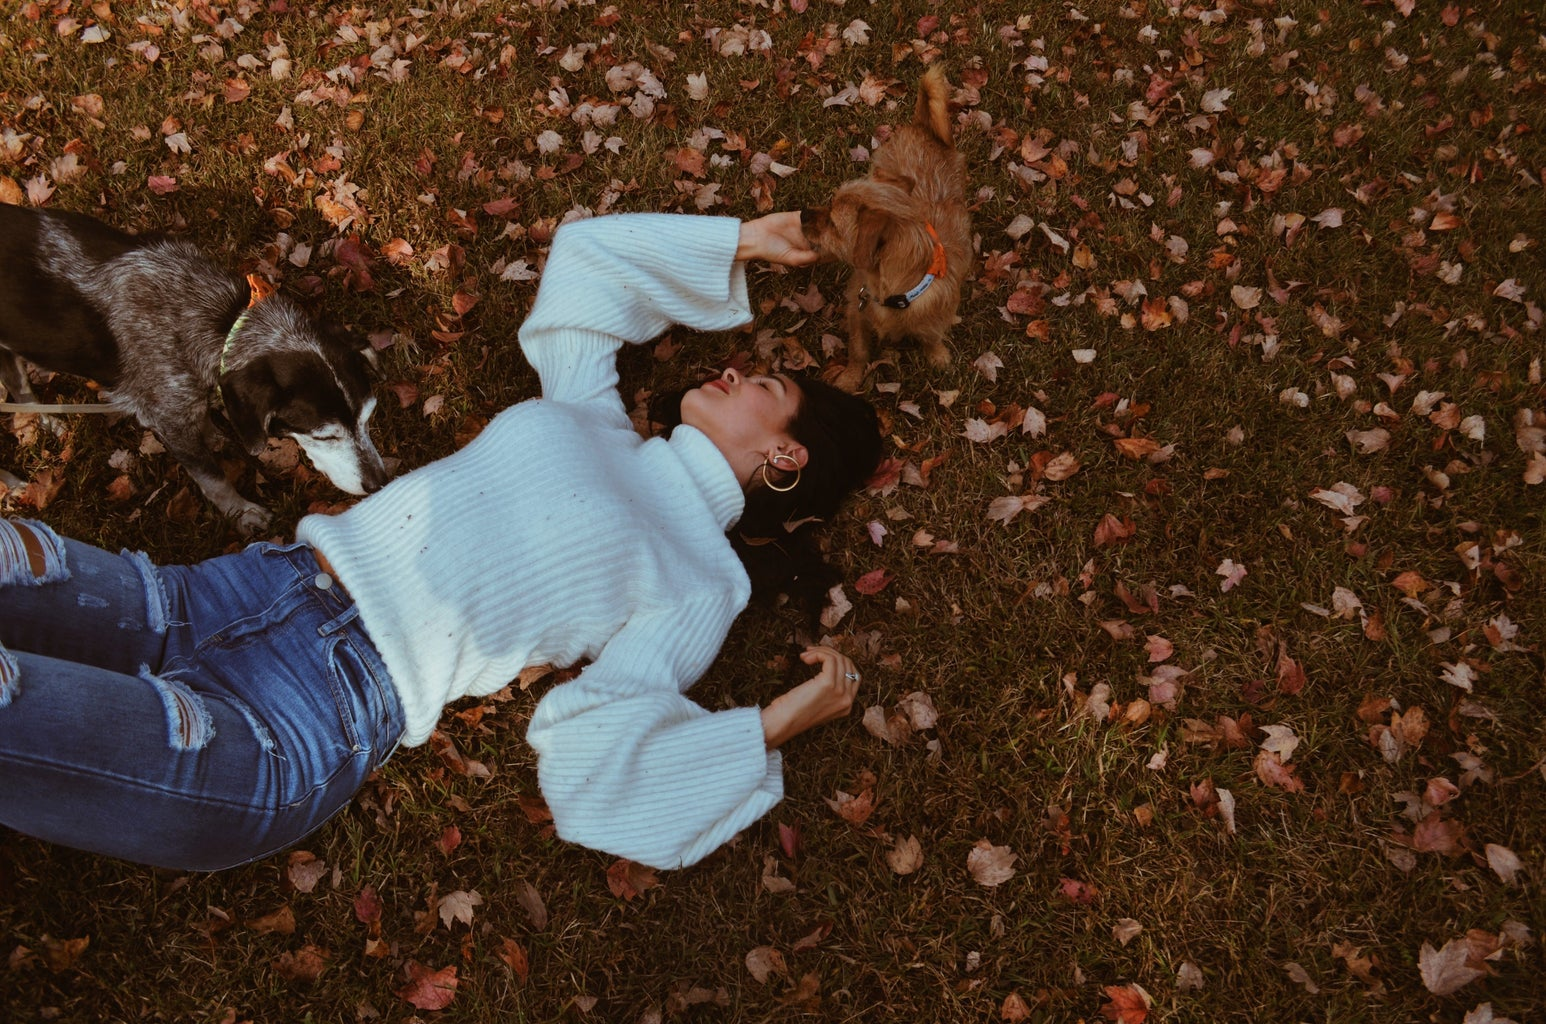 woman lying on ground with leaves